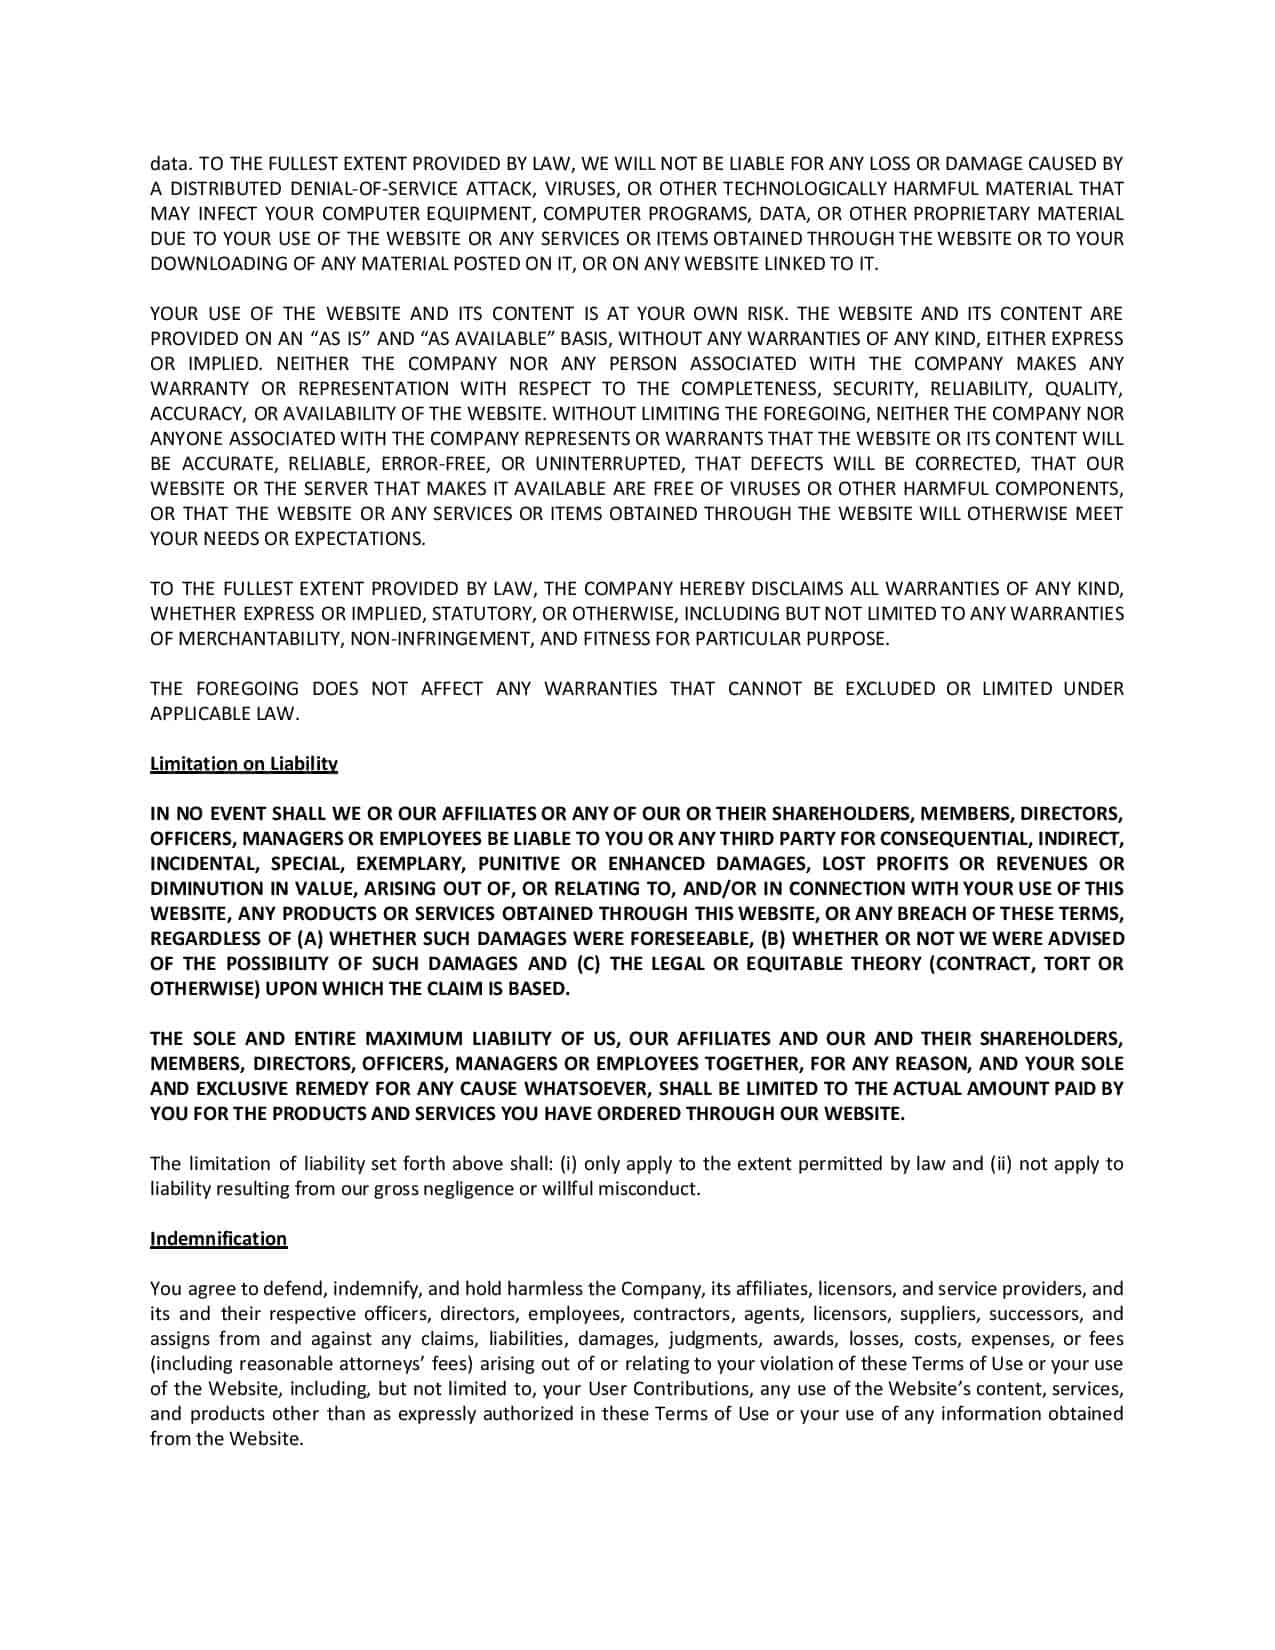 salvationsdrugaddictiontreatment Terms of Use-page-005